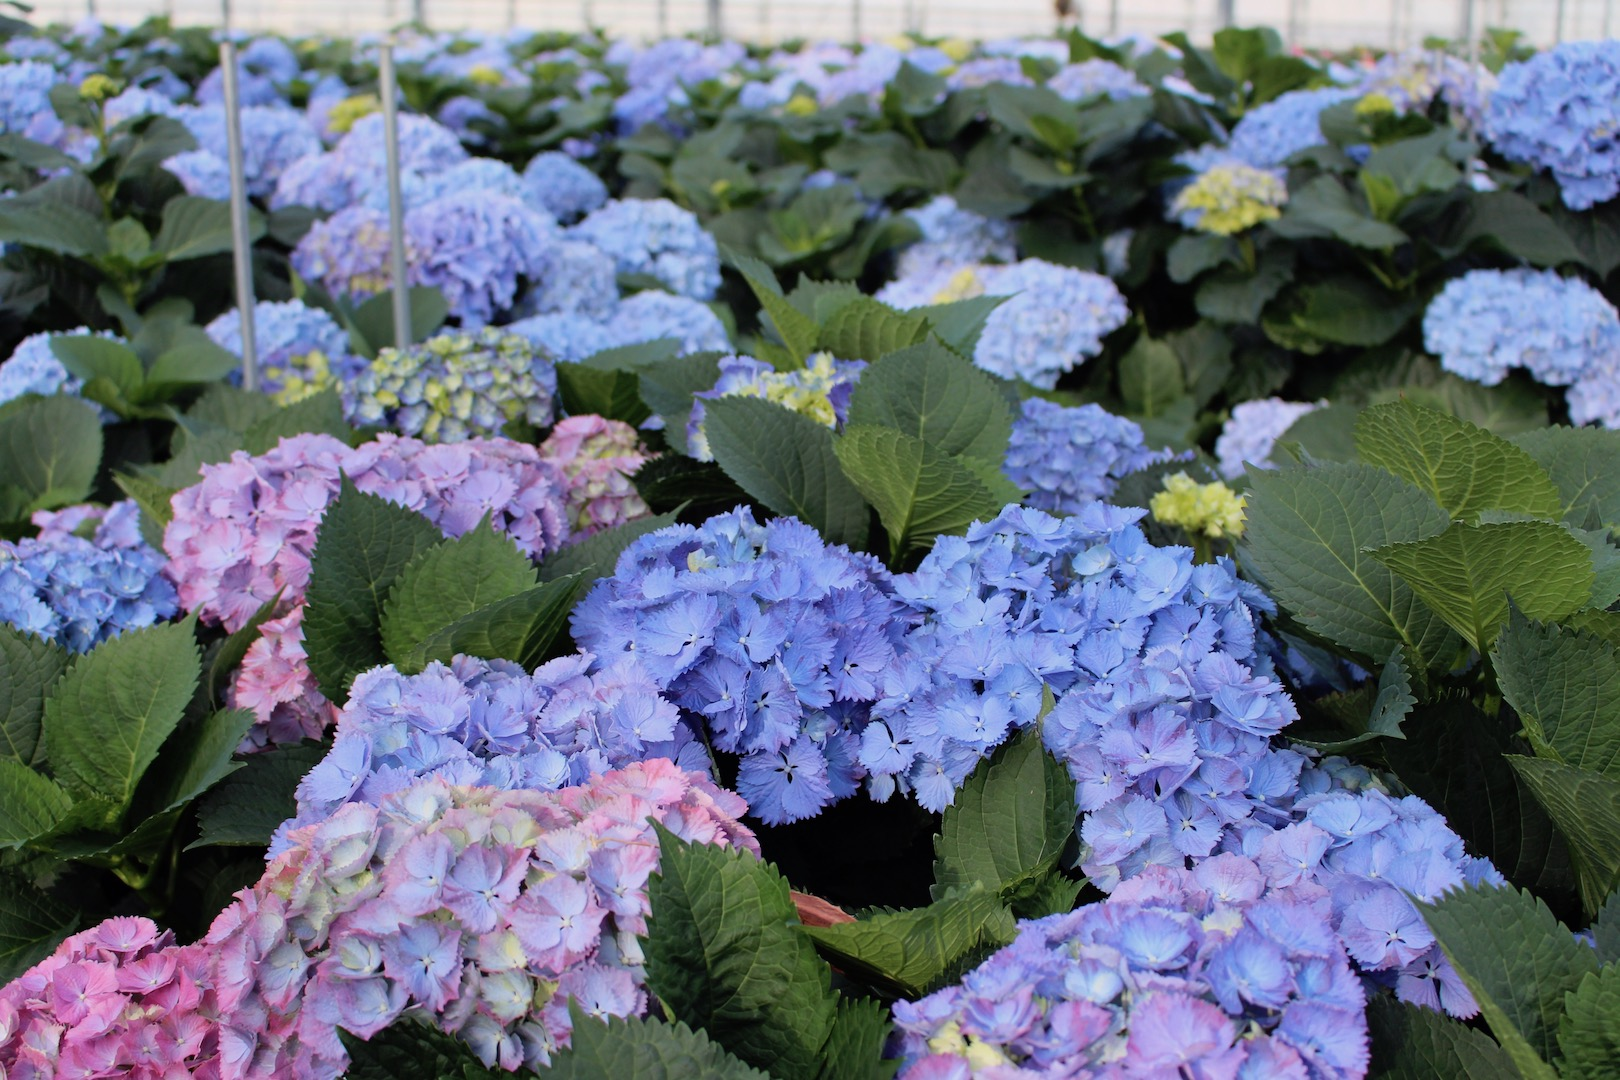 Examples of Hydrangeas changing colour on the plant.